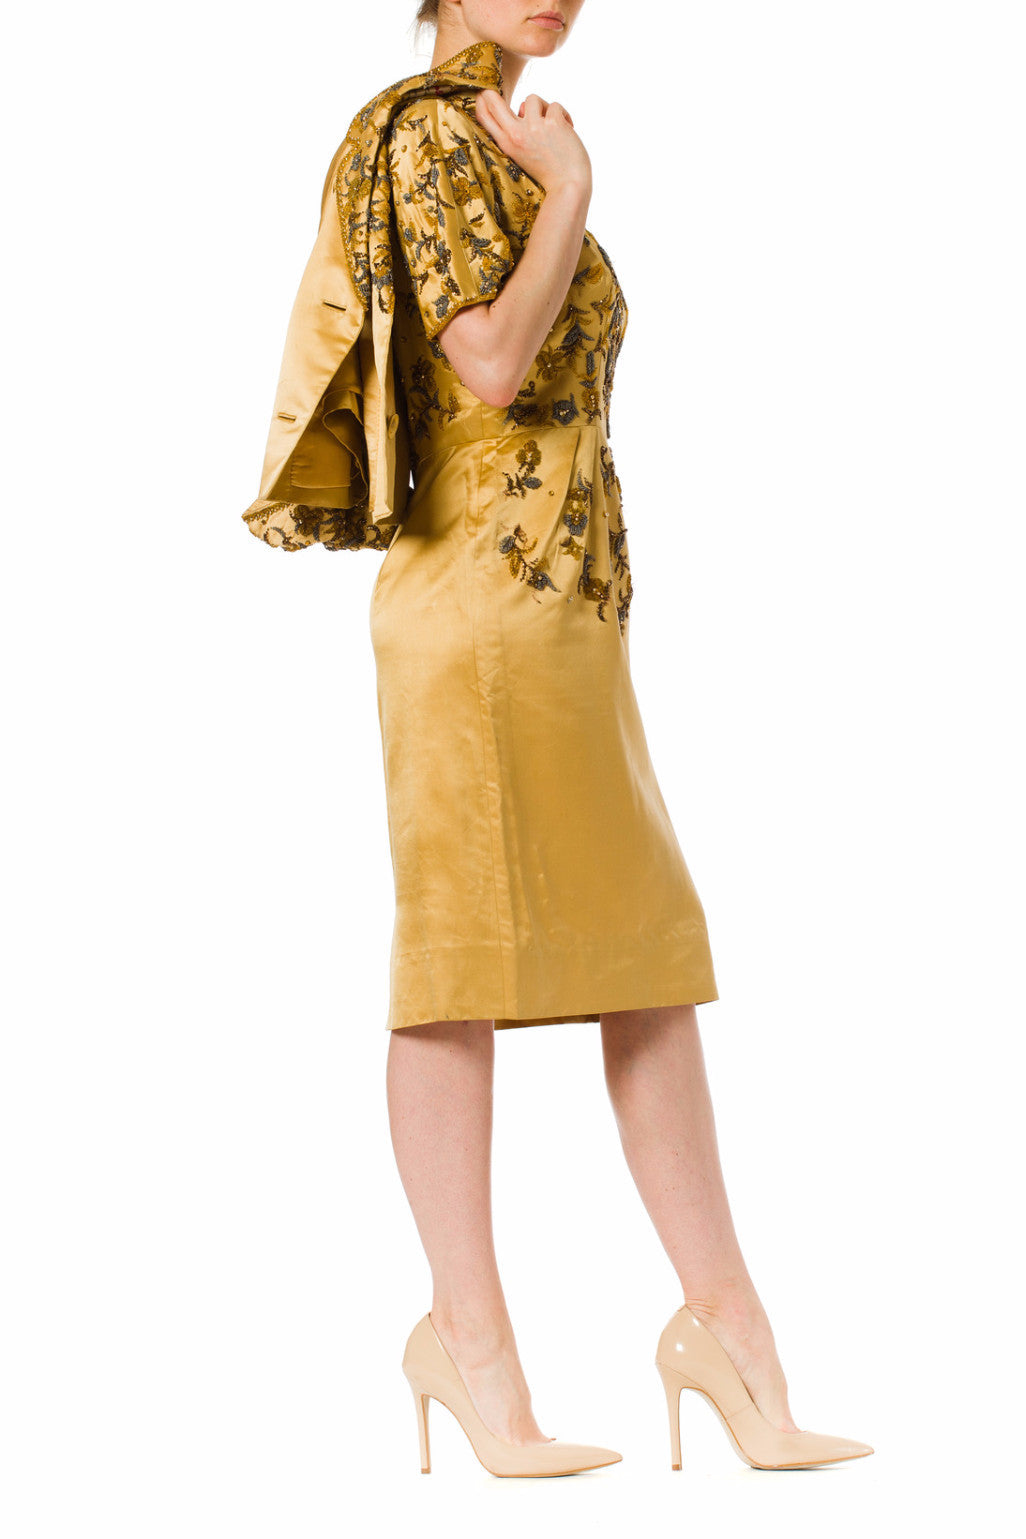 1950S CHRISTIAN DIOR Style Gold Haute Couture Silk Duchess Satin Beaded Cocktail Dress With Matching Jacket